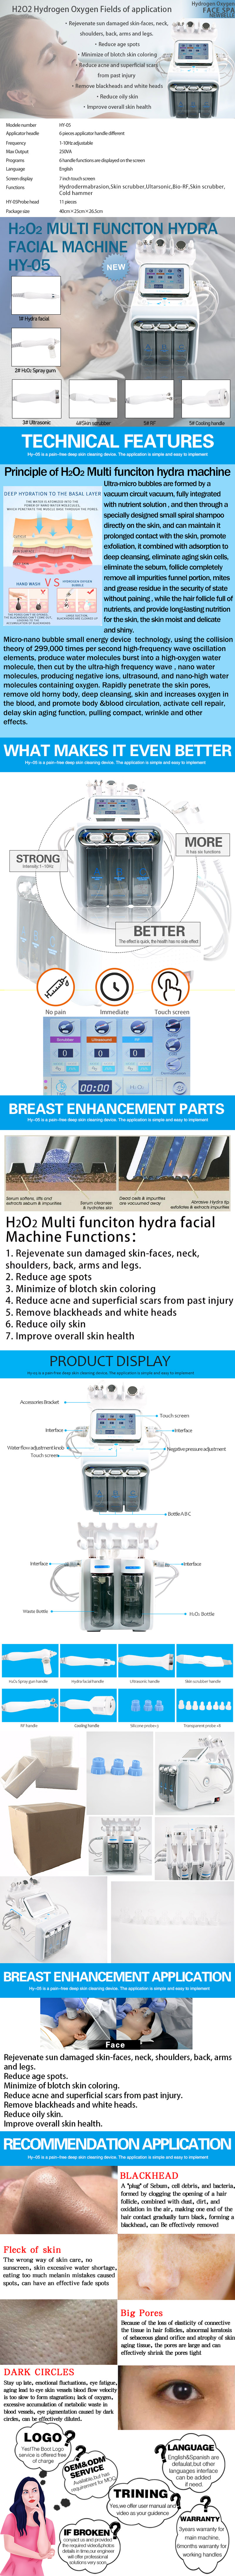 SPA02 Hydrafacial Equipment product details